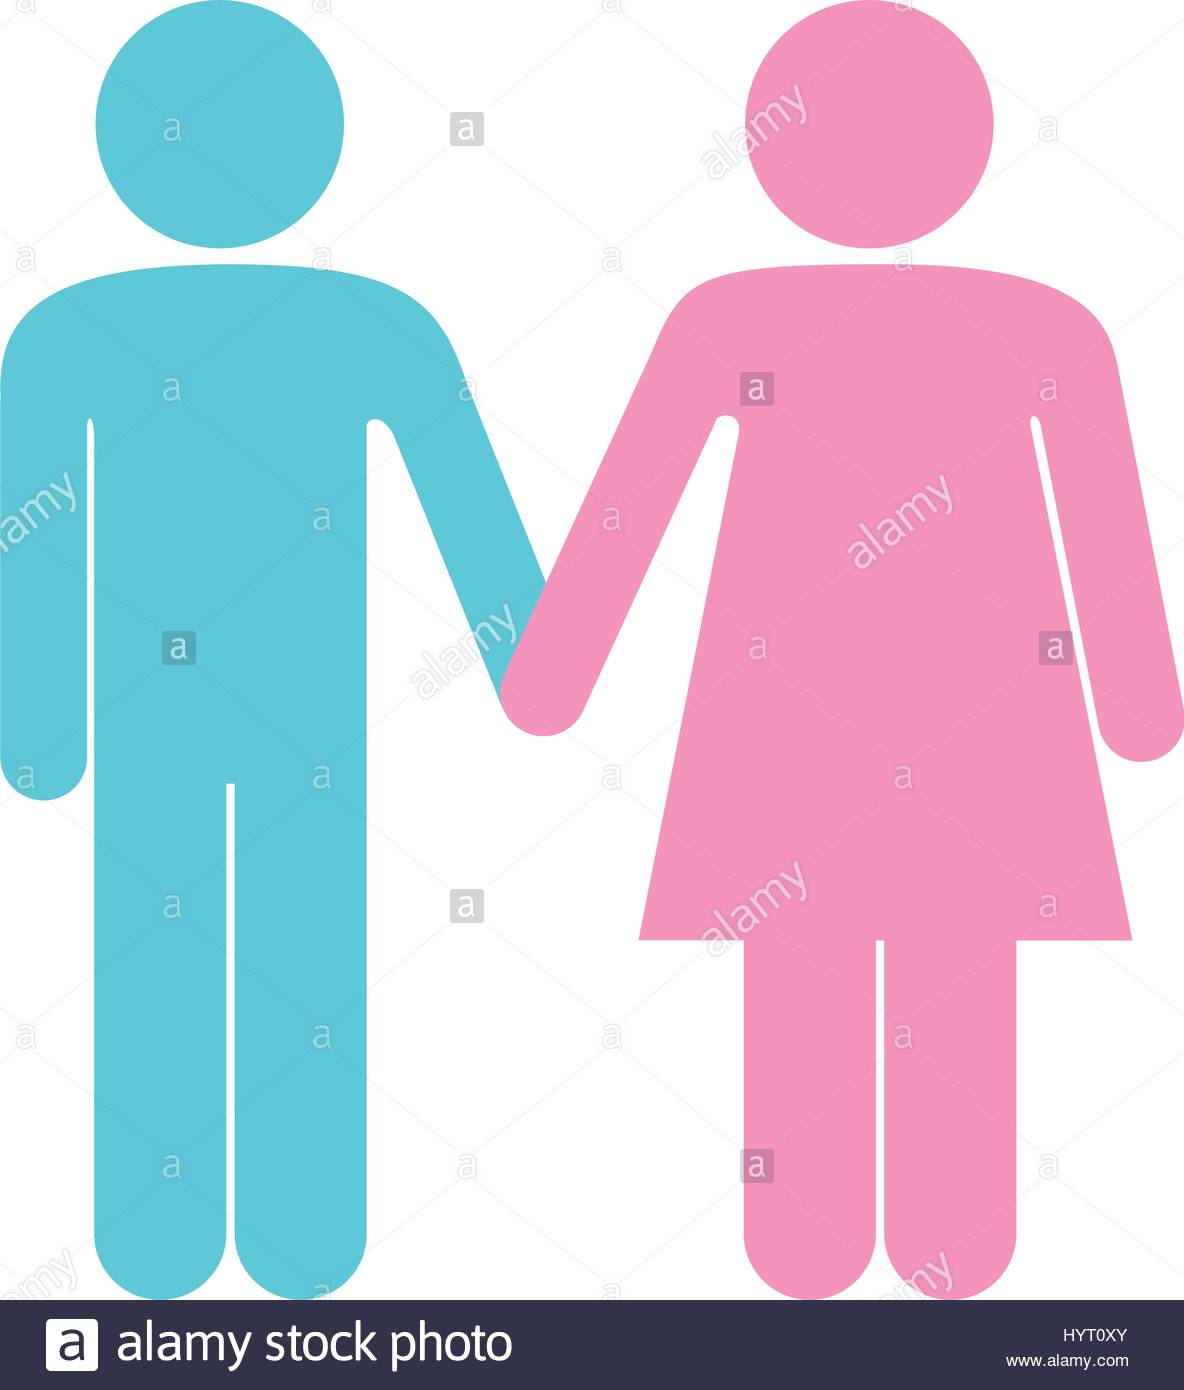 1184x1390 Colorful Pictogram Silhouette Couple Holding Hands Stock Vector